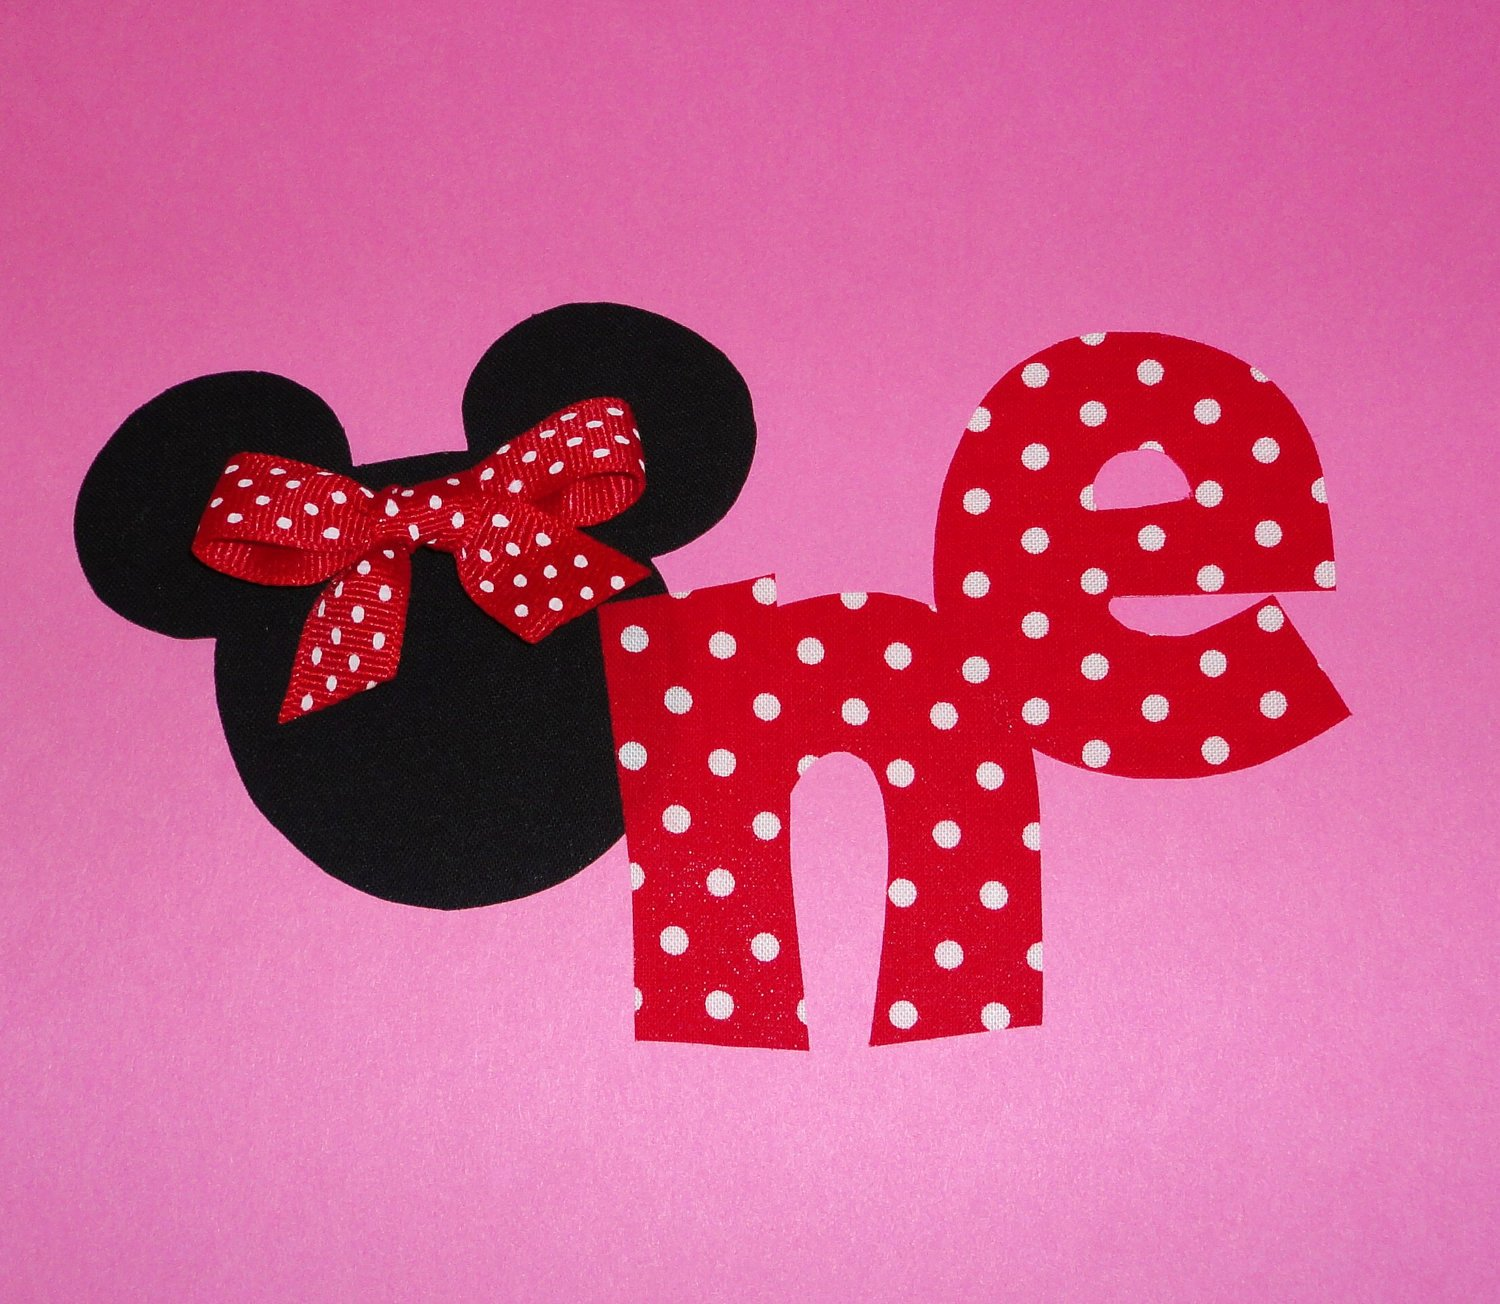 Minnie Mouse Template Head Beautiful Fabric Applique Template Pattern Ly Mickey Minnie by Etsykim